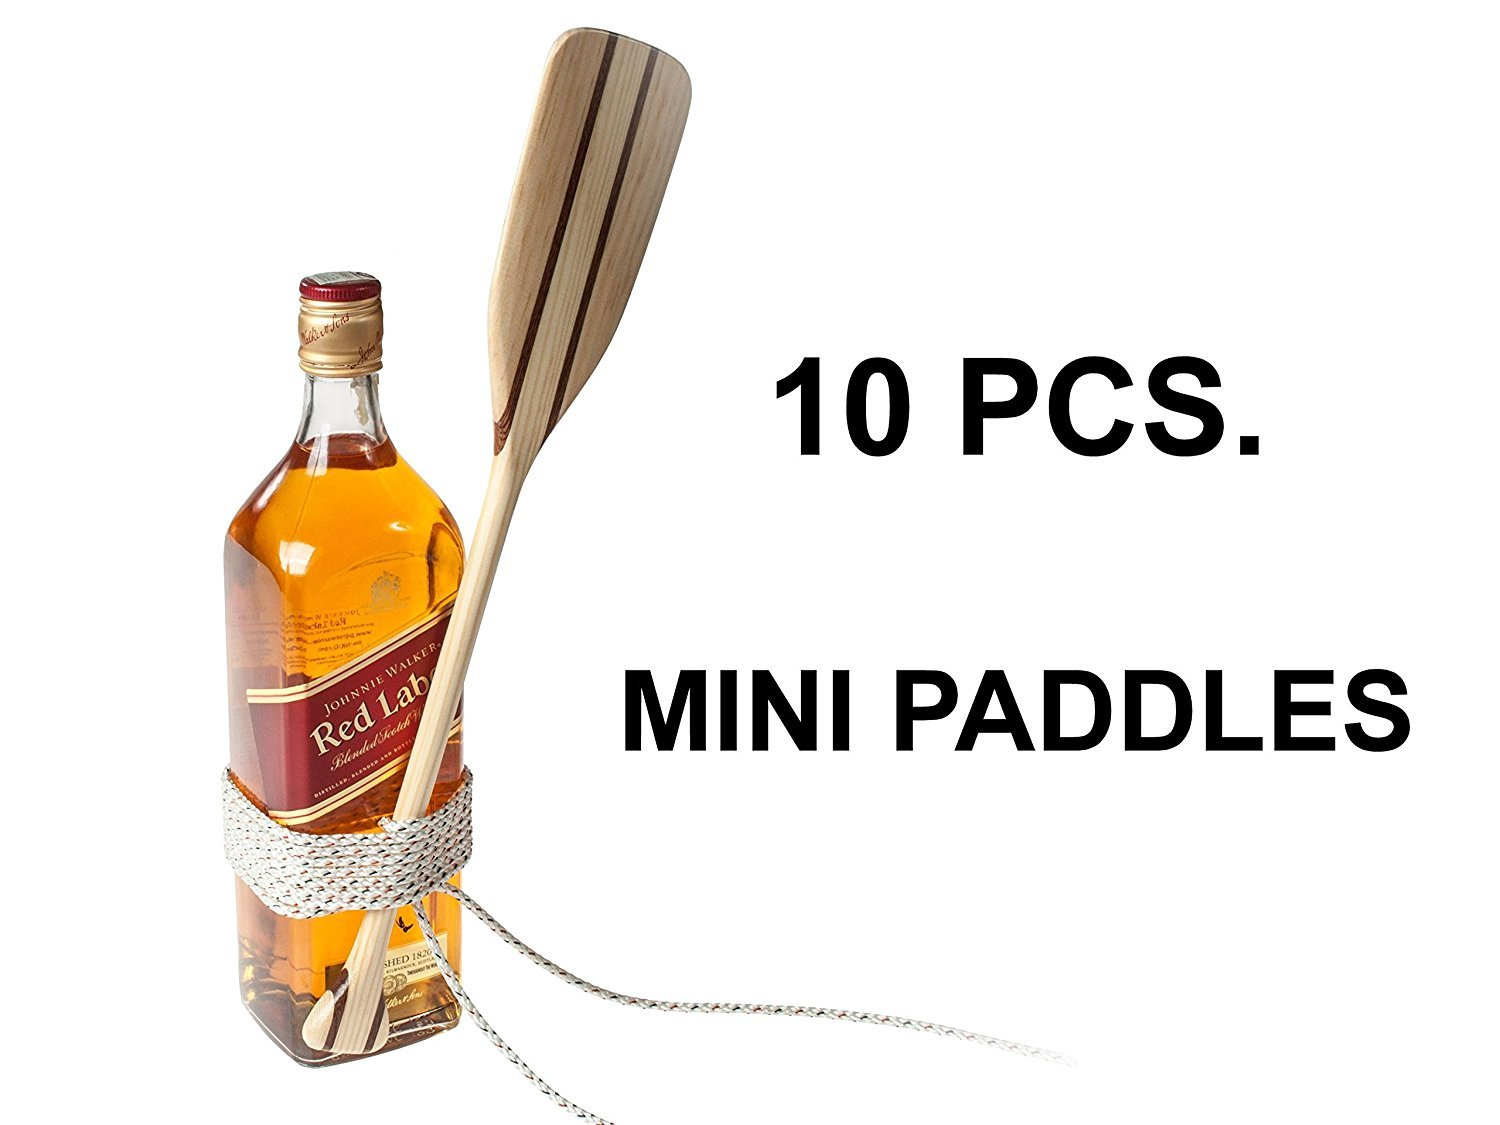 Wooden Pine Mahogany Mini Paddle - excellent Gift for Sailers Canoeists Kayakers Rafters etc. x 10 pcs.